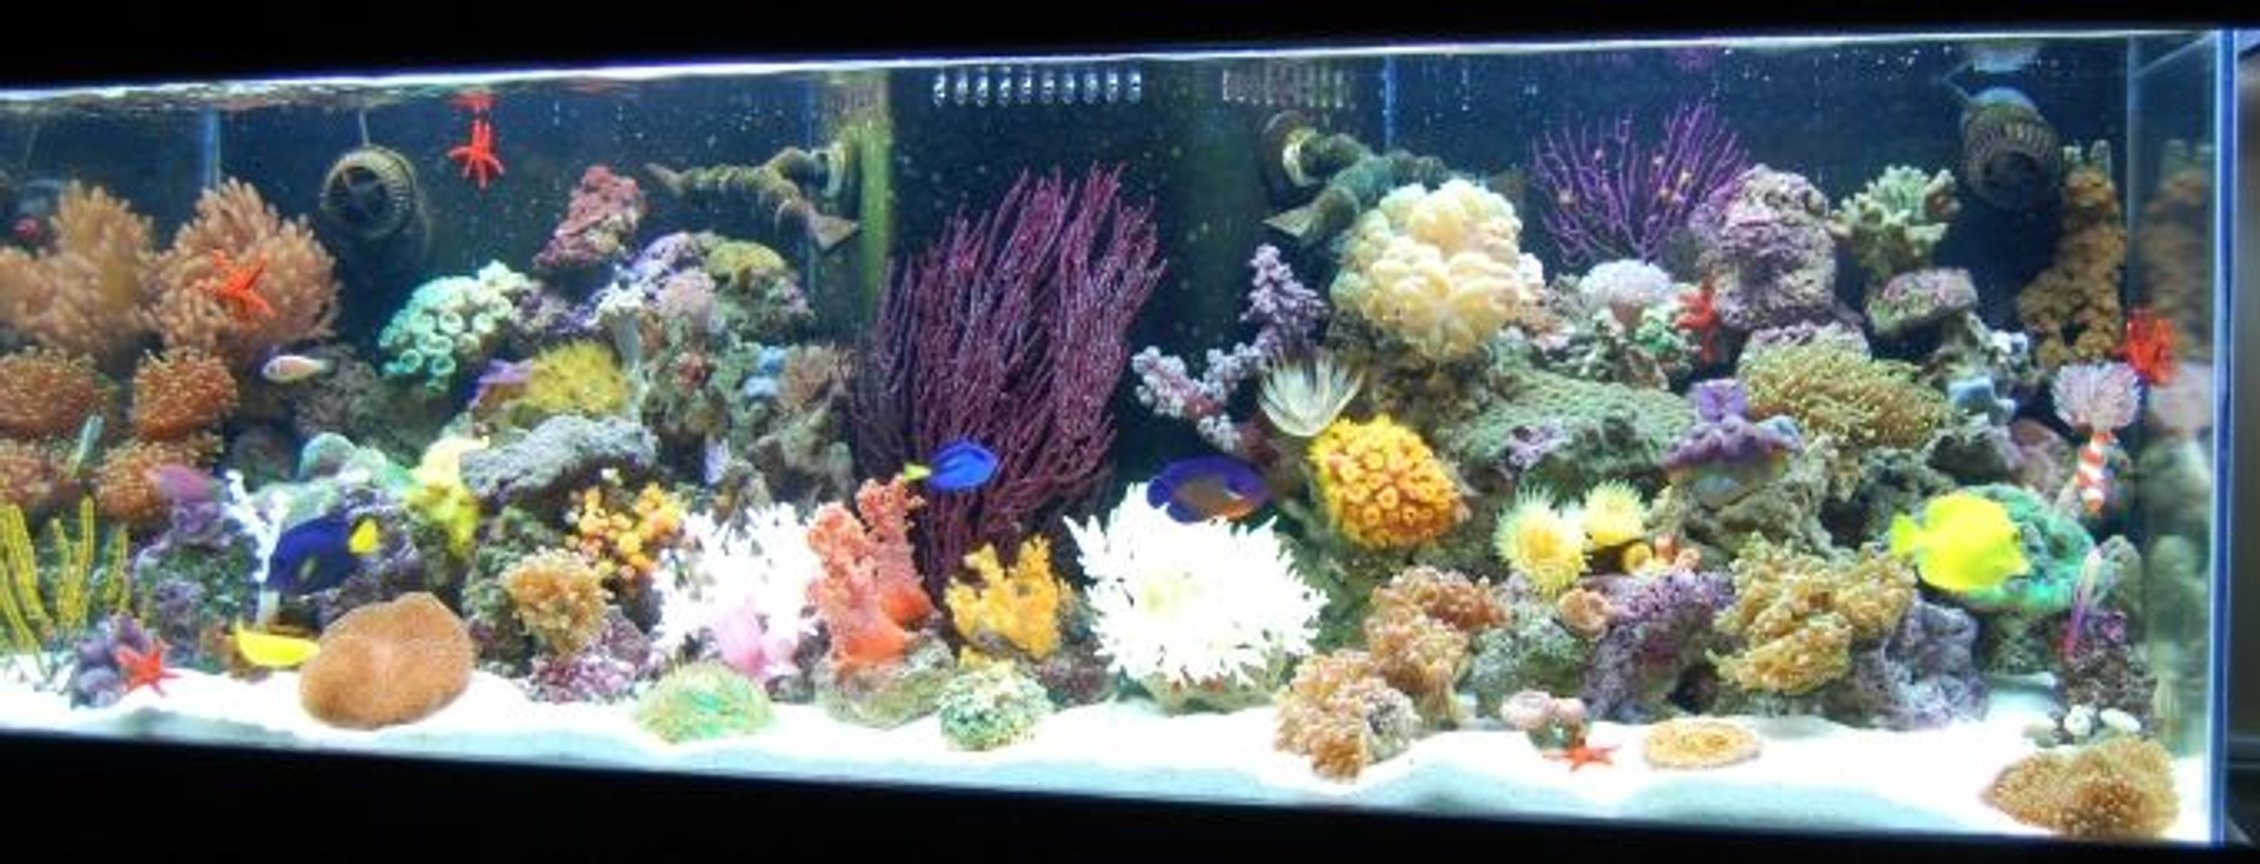 fish tank picture - Javier who has created this site has it rigged so you can't even vote on our pictures (Ryan - The Shepherds Reef Killer who built our tank has a tank posted which is NOT even his - we are done playing your third grade games) We are going to solicite the advertisers and make our own web site and do what we want on it so don't worry we'll be back ad # 1 again just like we were meant to be!!!!!!!!!!!!!!!!!!!!!!!!!!!!!!!!!!!!!) Every kind of fish you can think of that everyone says you can't keep together, we have in the tank --- WE PURCHASED EVERYTHING IN OUR TANK FROM JEFF'S EXOTIC FISH IN COSTA MESA (714) 540-0880 THEY ARE VERY KNOWLEDGABLE AND CAN GET YOU STARTED EVEN IF YOU JUST WANT A LITTLE NANO TANK. THANKS GUYS!!!! Full view of tank with more added and re-arranged (6/22/08)